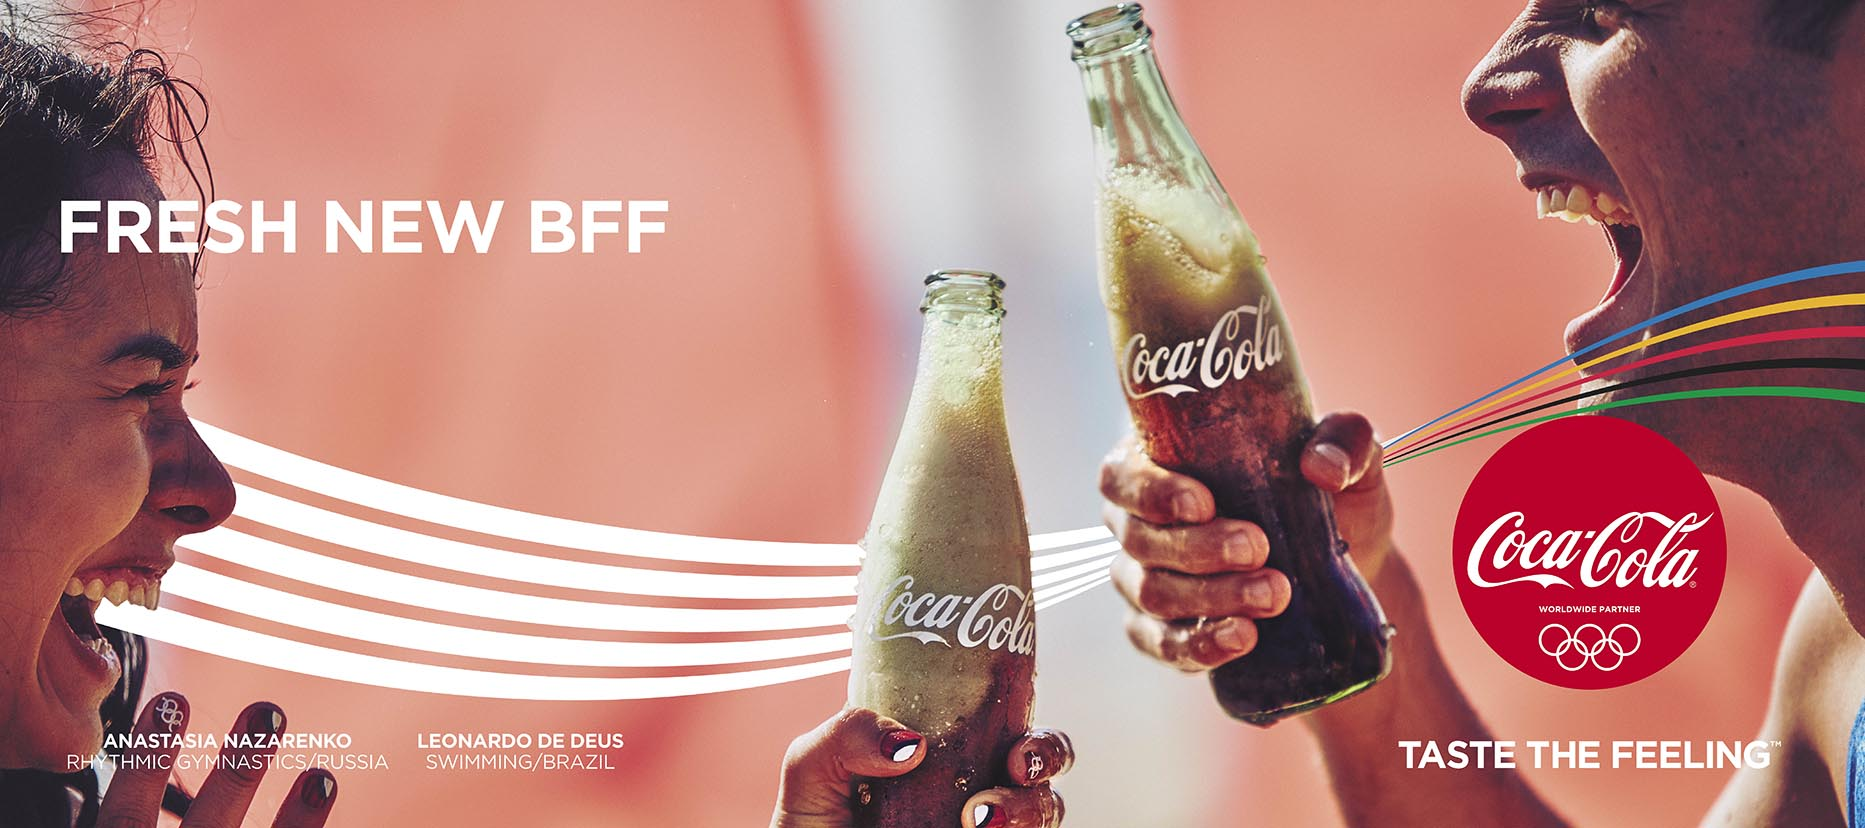 289026_CocaCola_Olympic_OOHGlobal_30sh_GoldMoment_LOWPASS_14.jpg